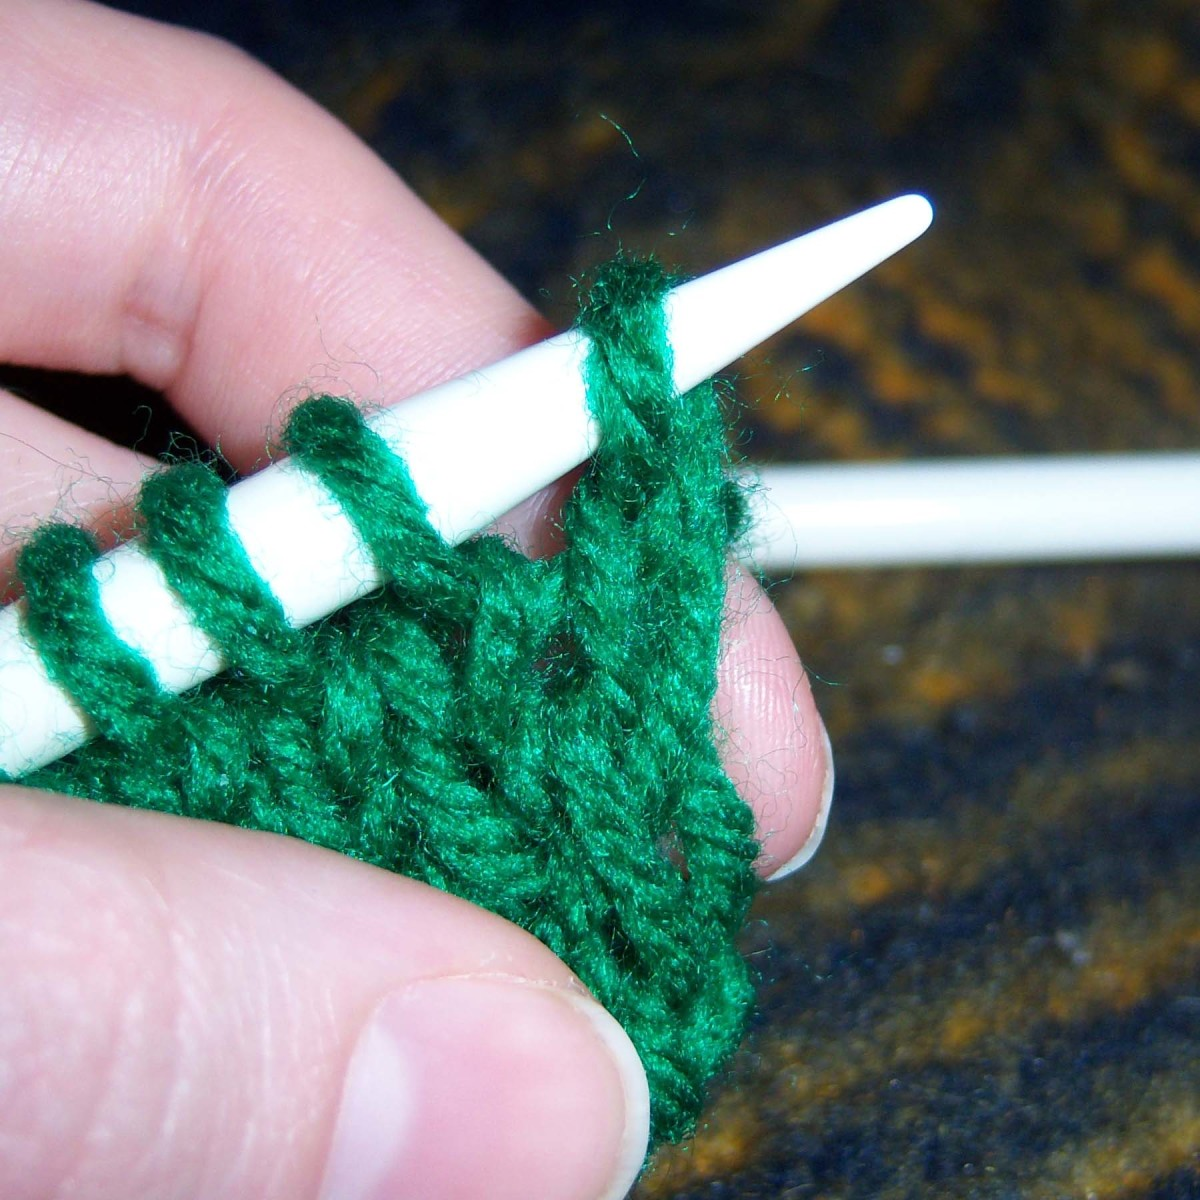 Transfer that stitch onto the other needle.